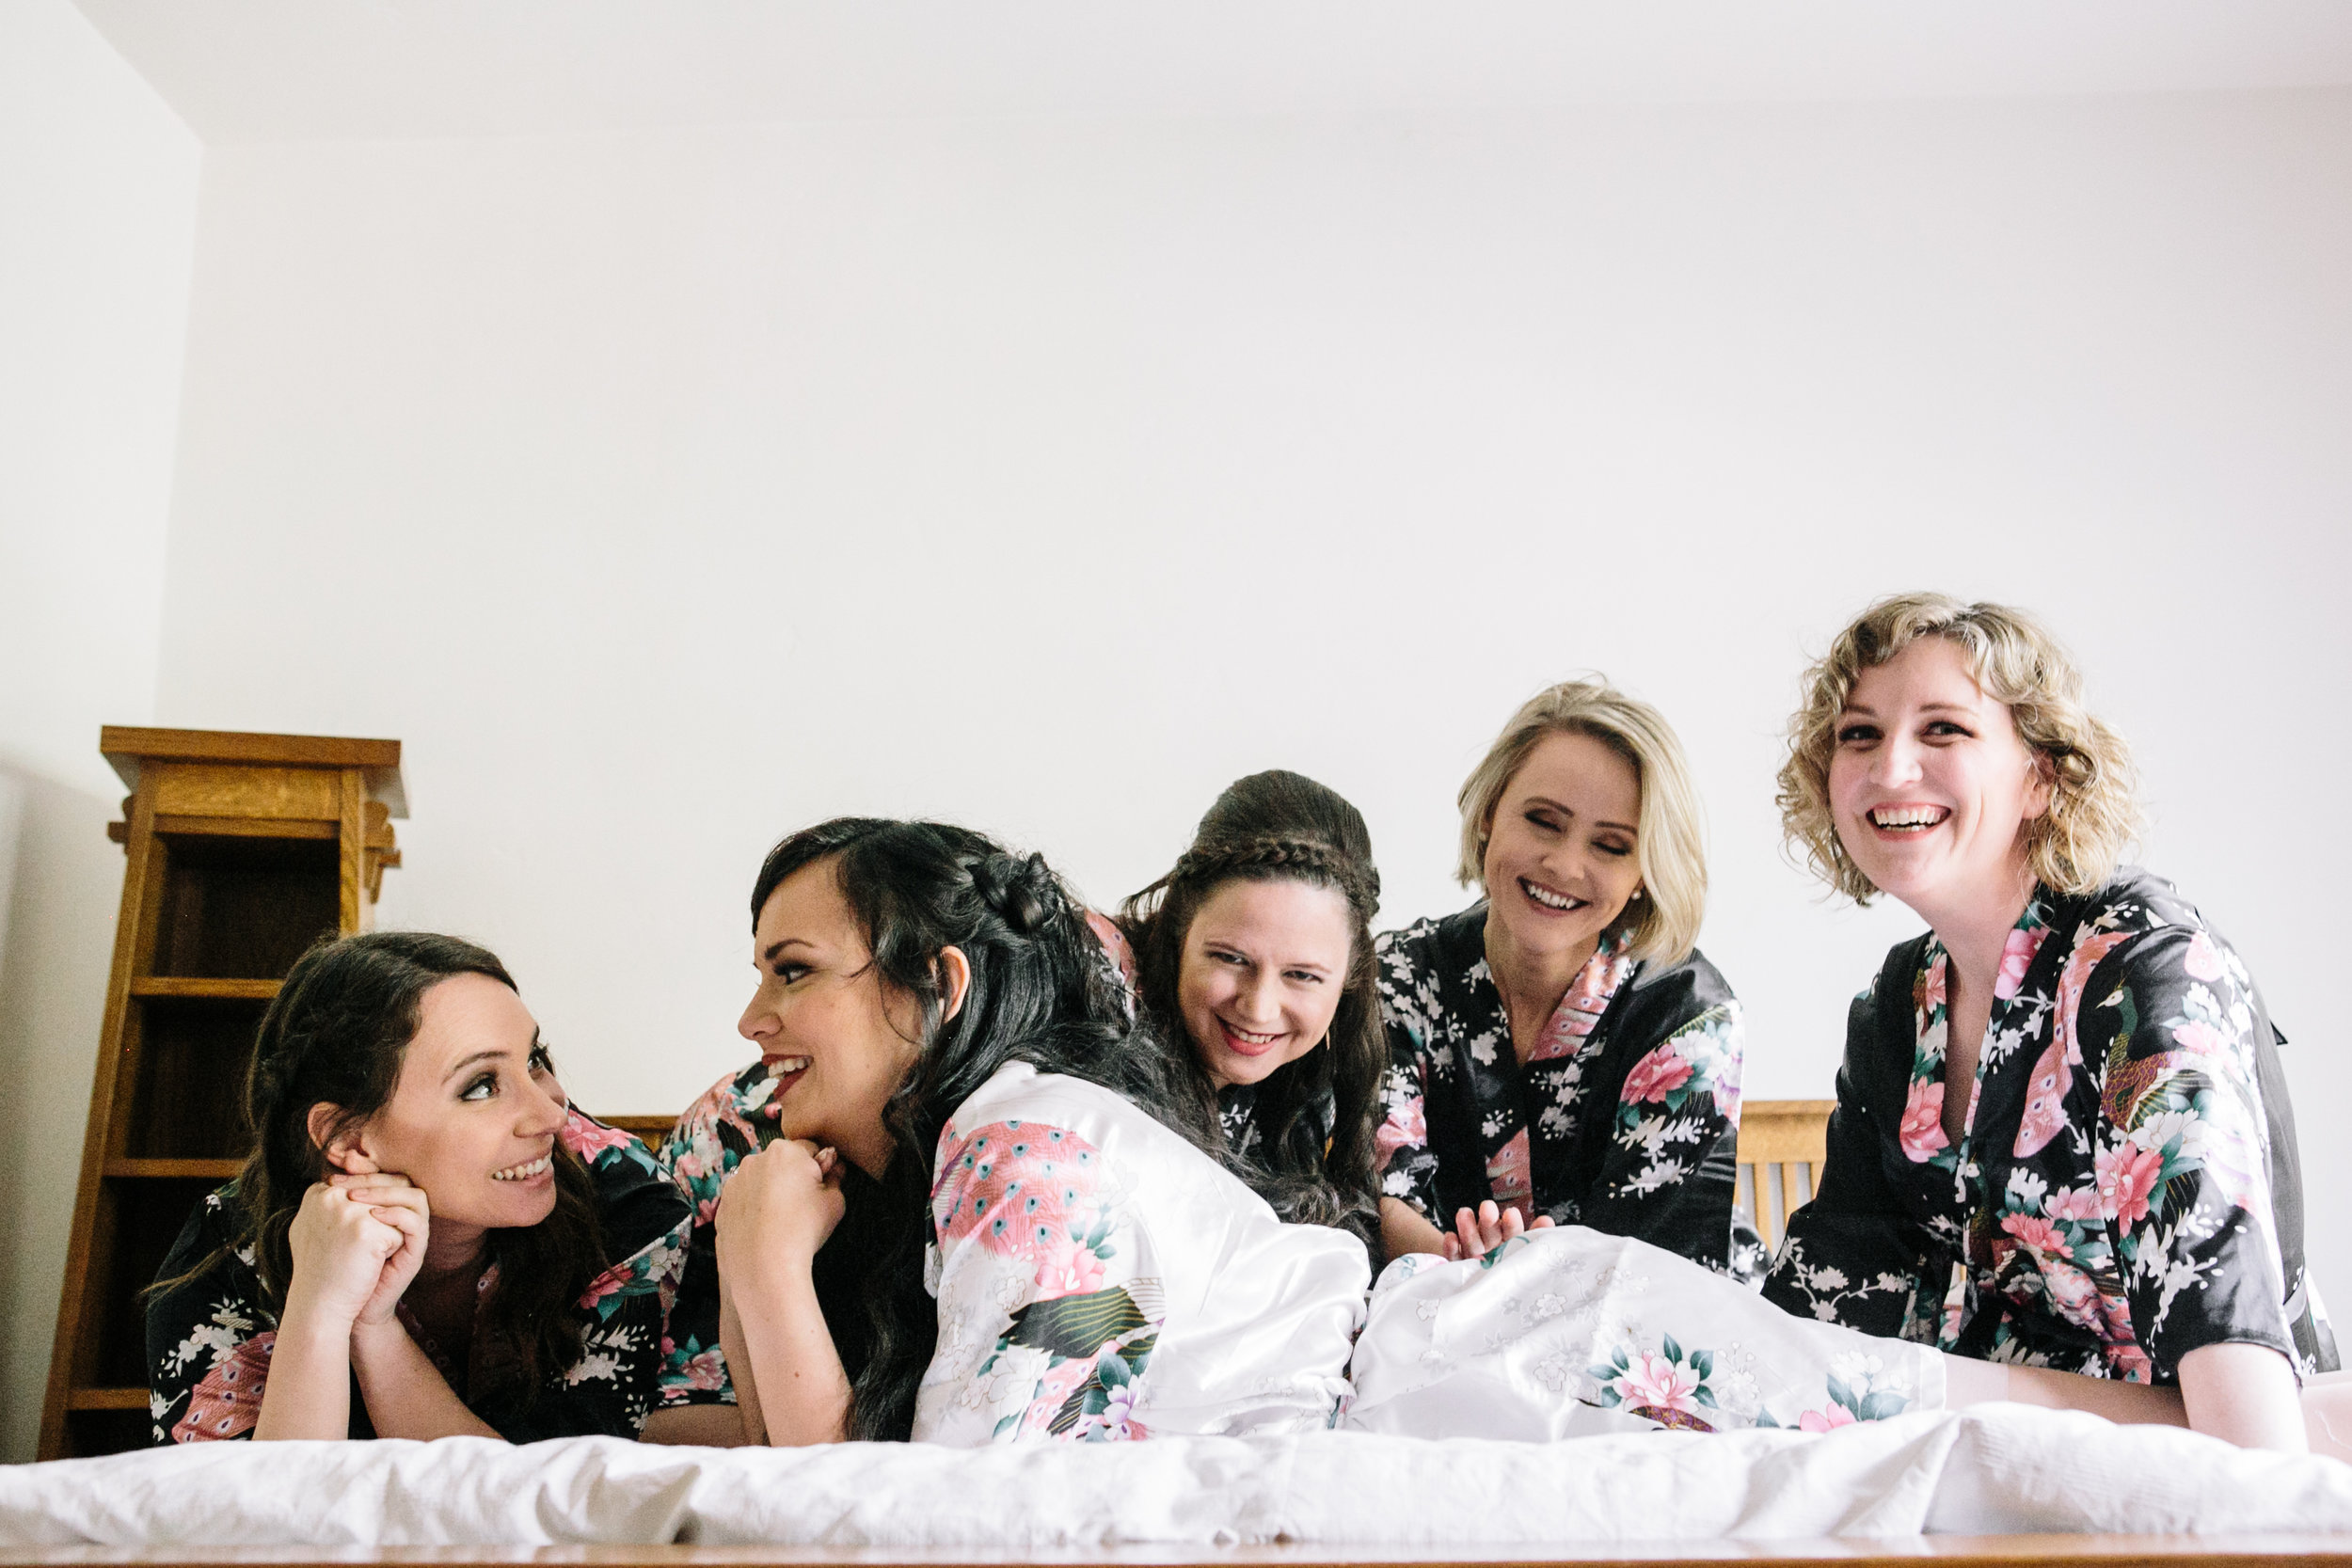 Bridesmaids and Bride have fun before wedding bells